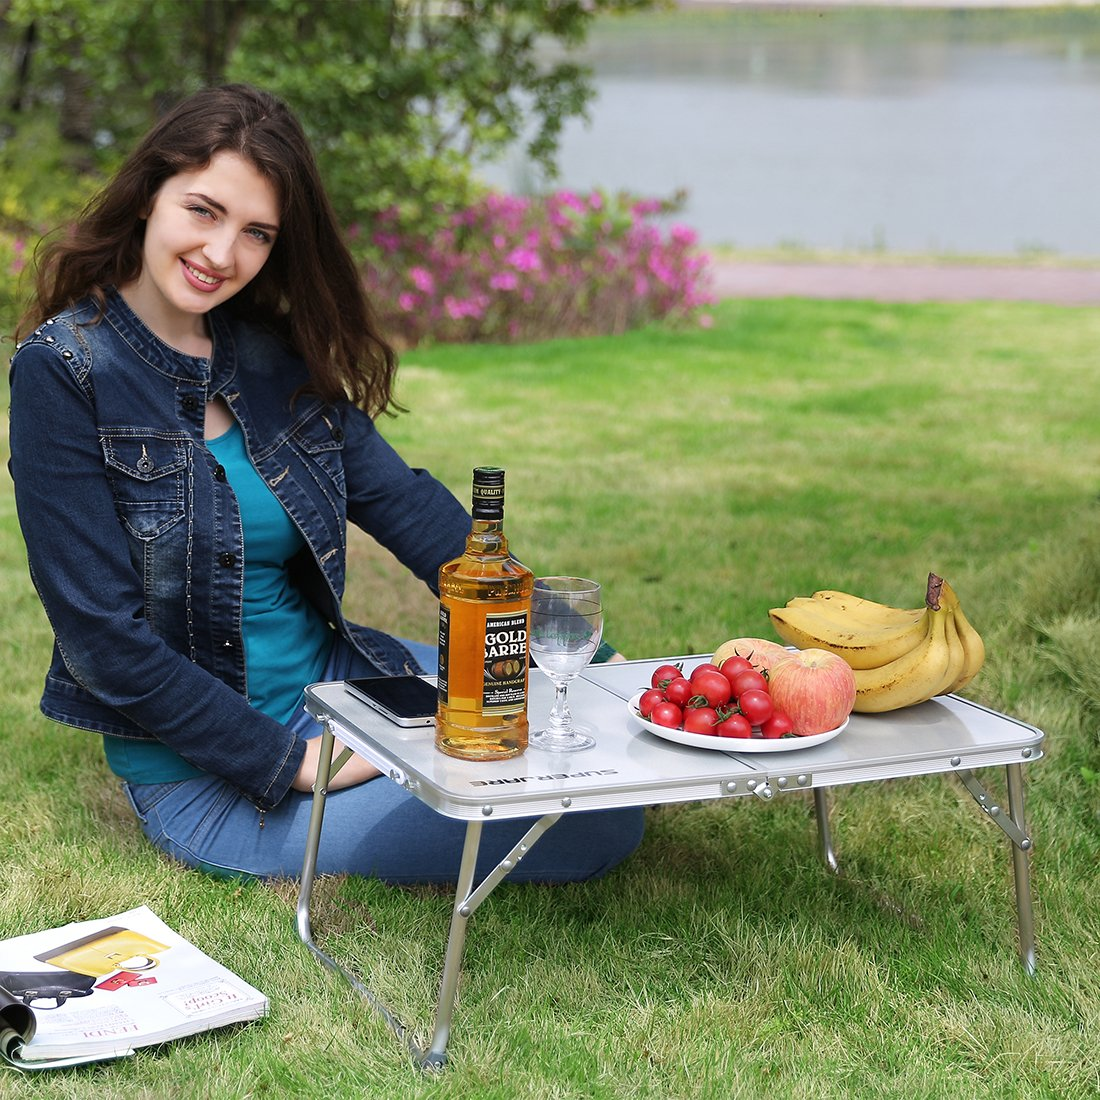 Portable Mini Picnic Table & Ultra Lightweight, Folds in Half with Inner Storage Space - Gray